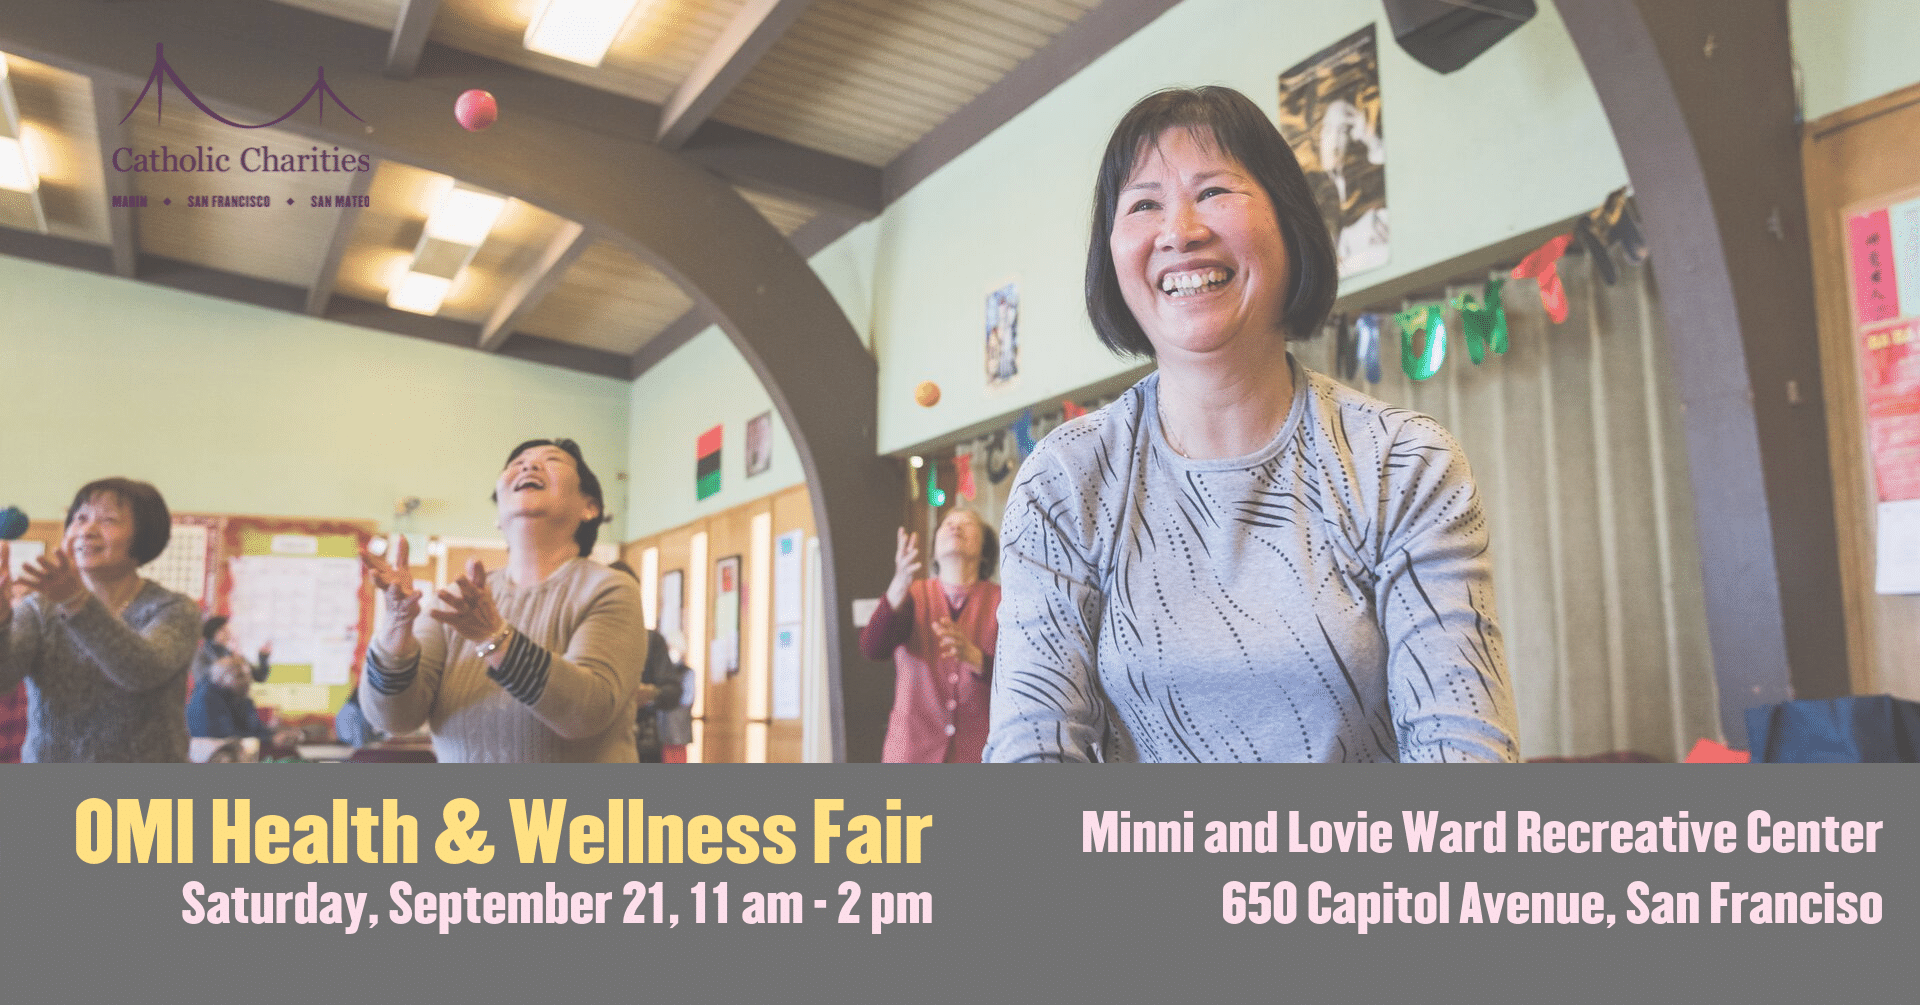 OMI Health & Wellness Fair